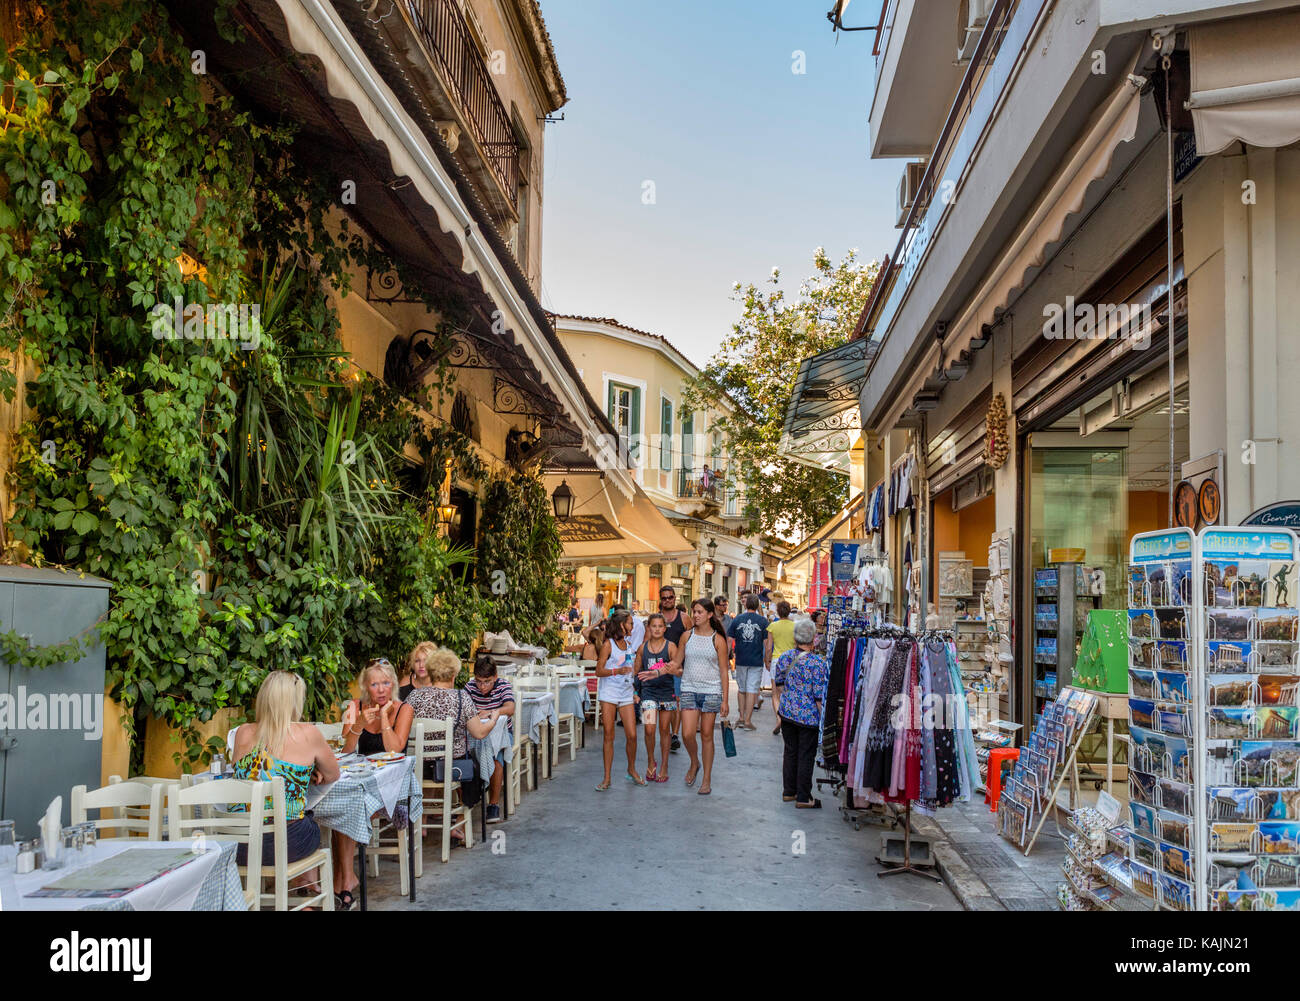 Shops and taverna on Adrianou Street in the Plaka district, Athens, Greece - Stock Image